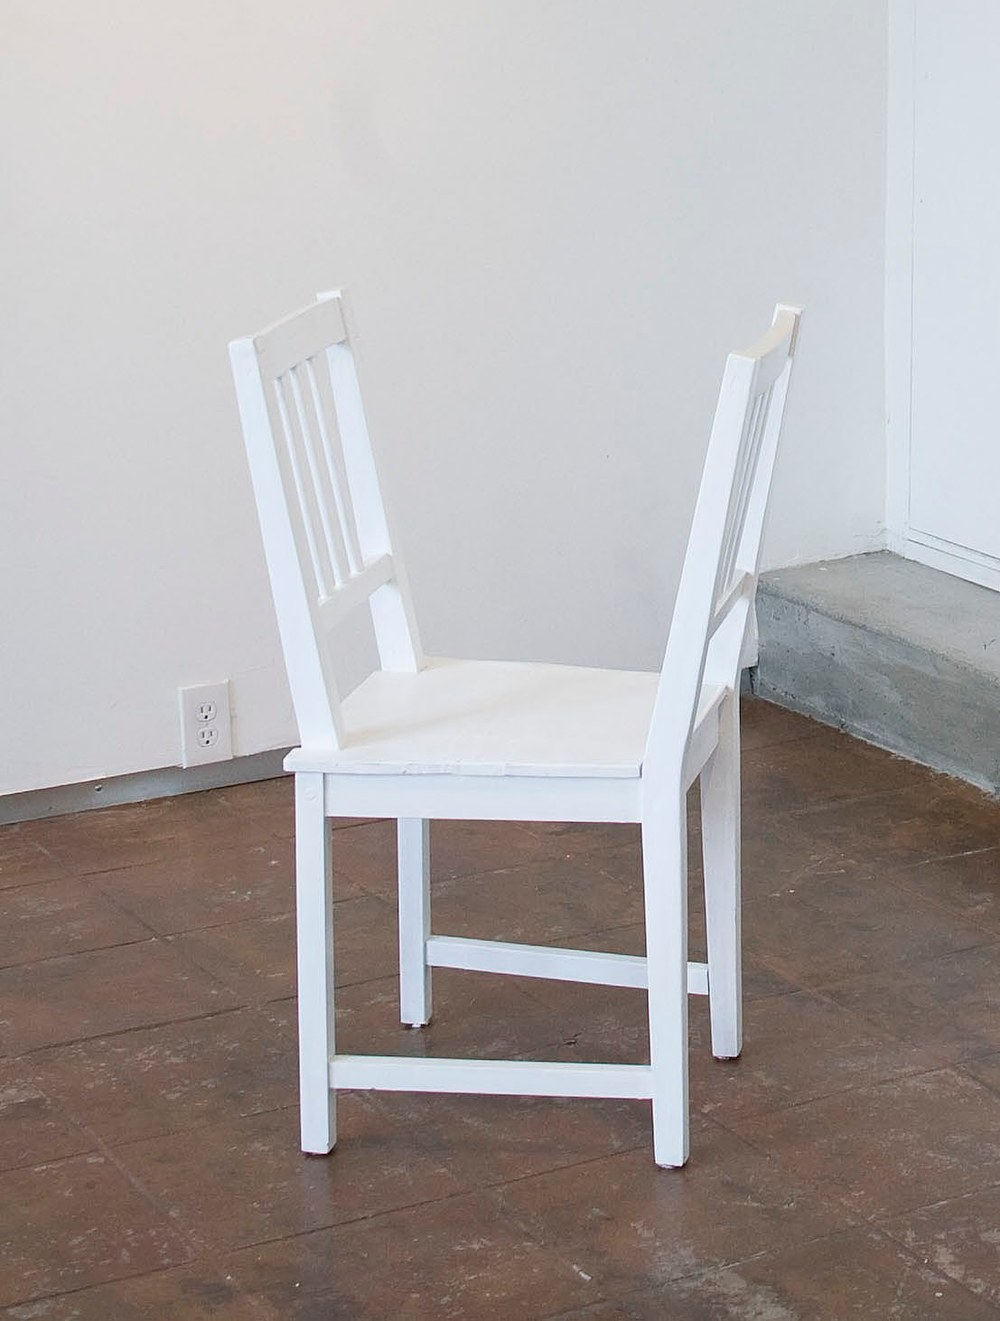 Sheila Ghidini Reflection, 2012 reassembeled chairs 36 x 17 x 16 inches